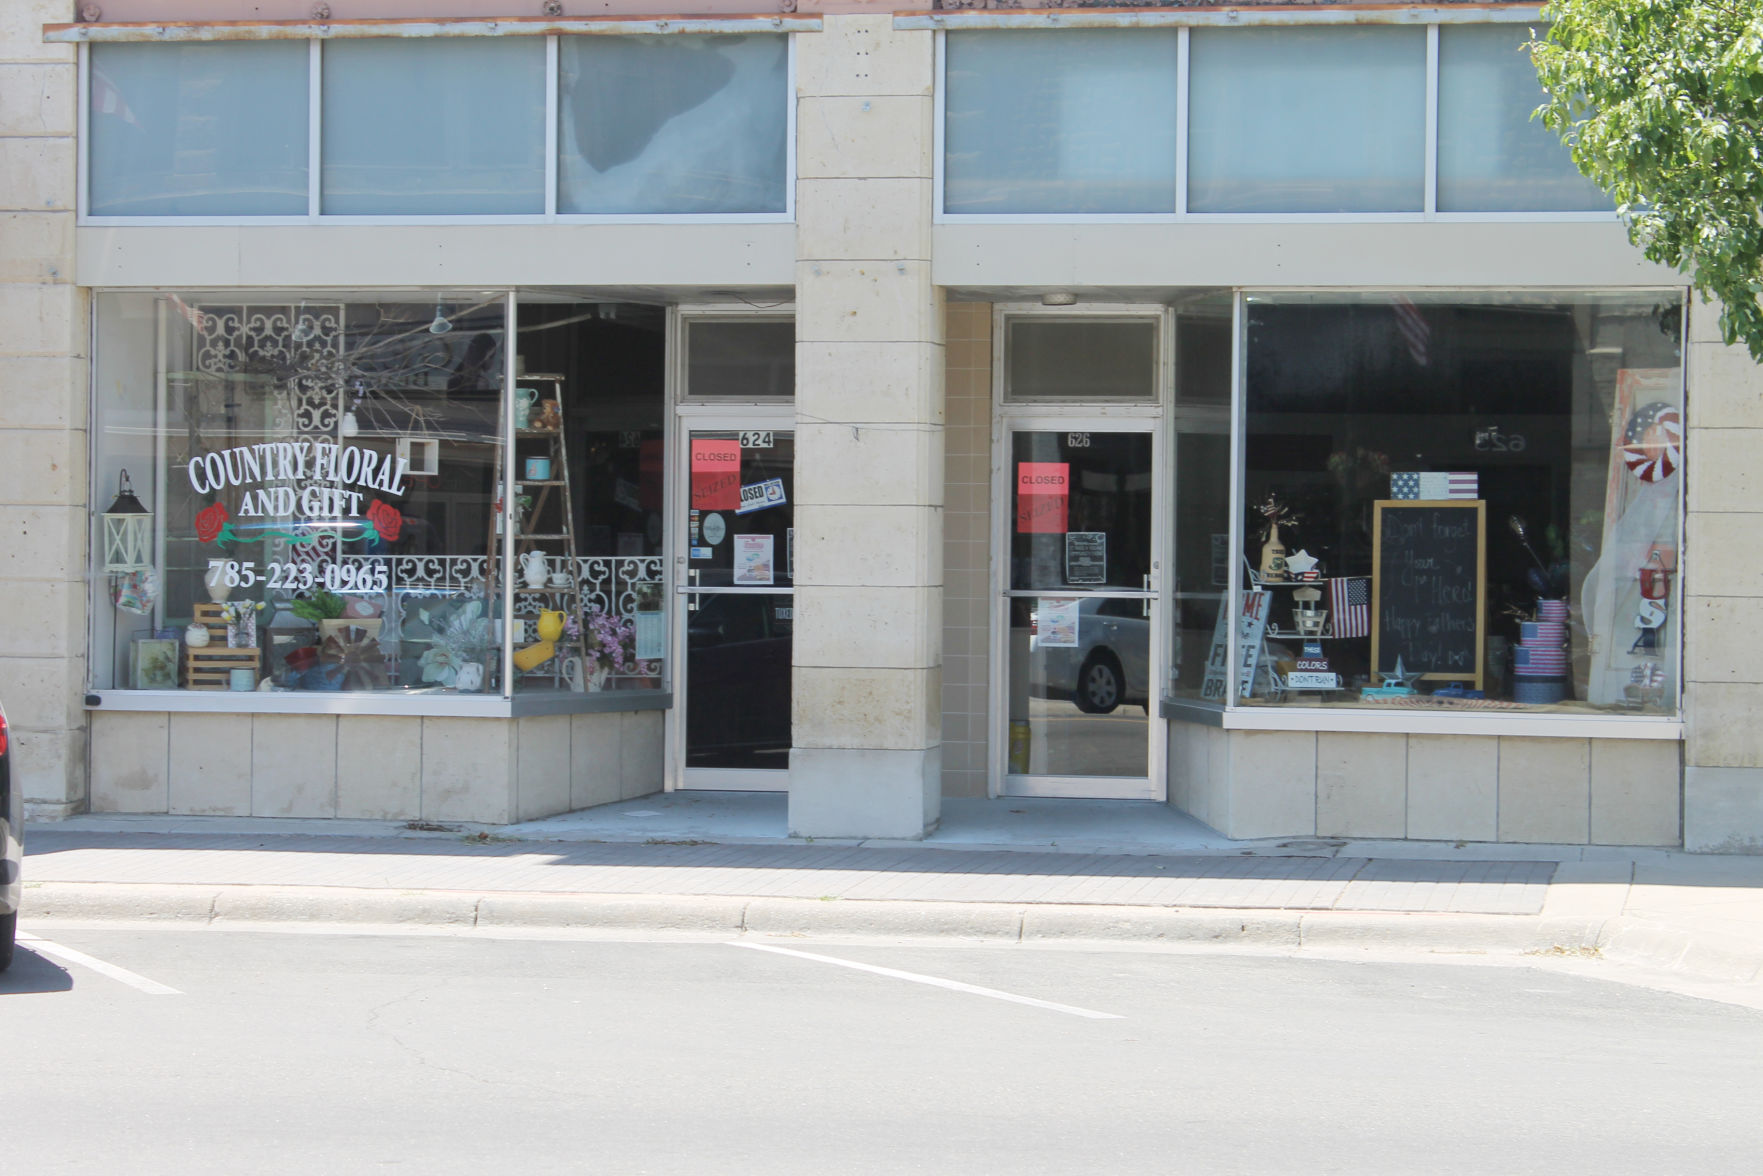 Warrants for nonpayment of taxes served at Junction City business